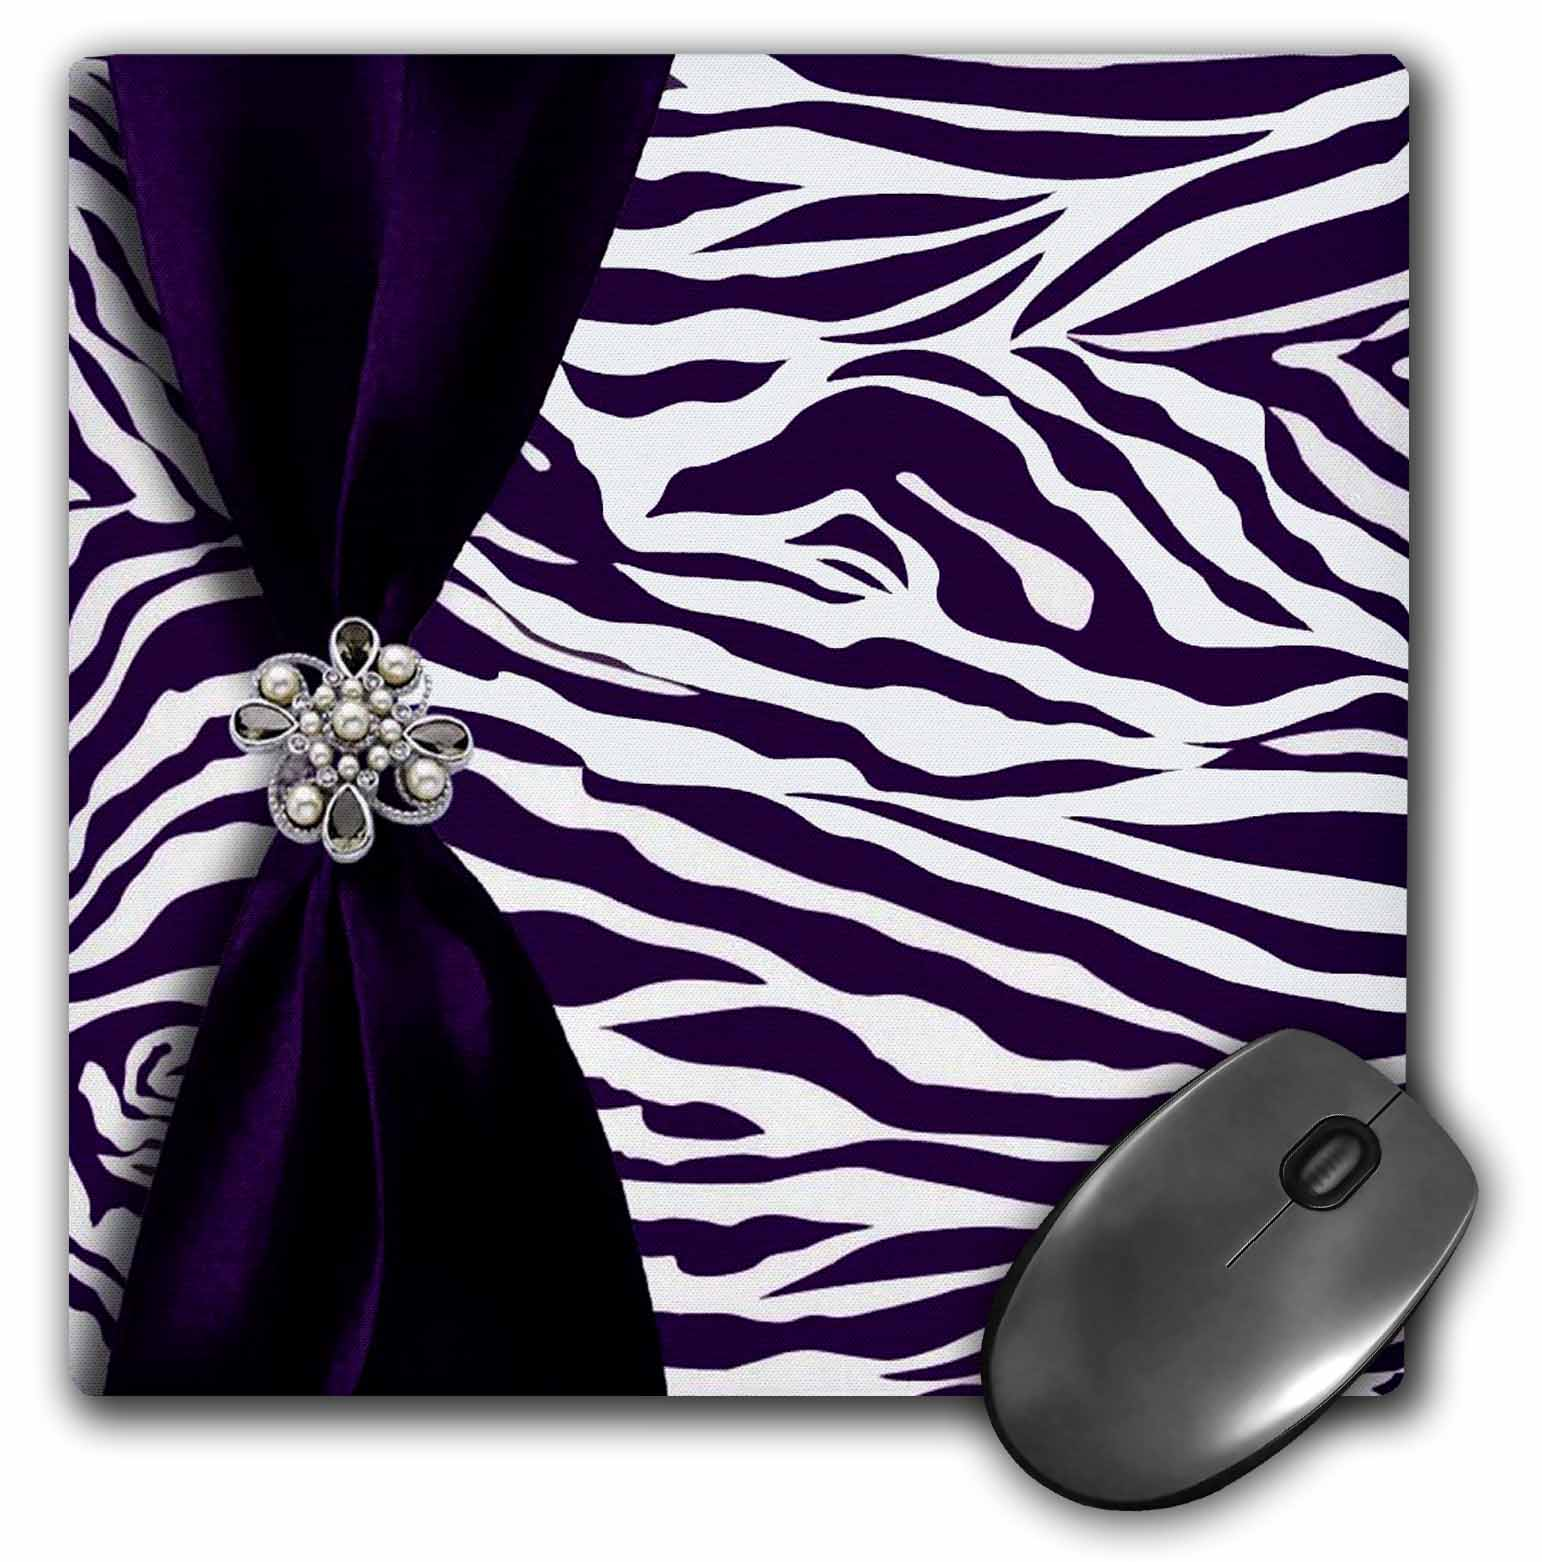 3dRose Purple and White Zebra Patterned, Mouse Pad, 8 by 8 inches